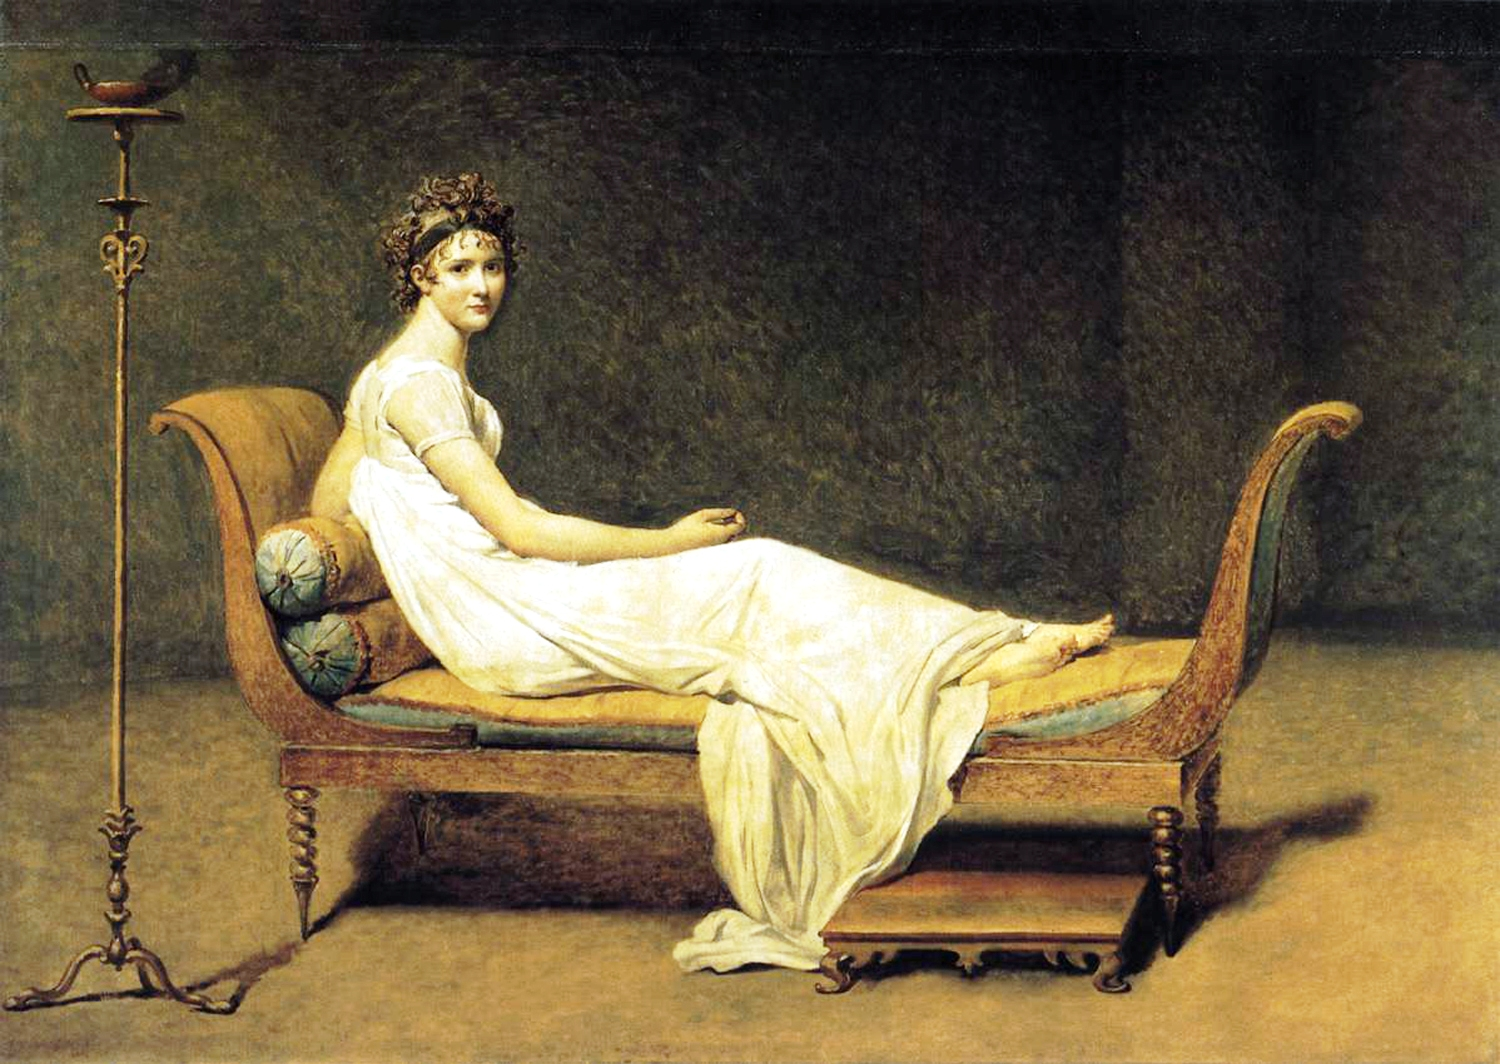 a biography of jaques louis david the french neoclassical painter Jacques-louis david was a 19th century painter who is considered to be the principal proponent of the neoclassical style, which moved art briskly away from the.